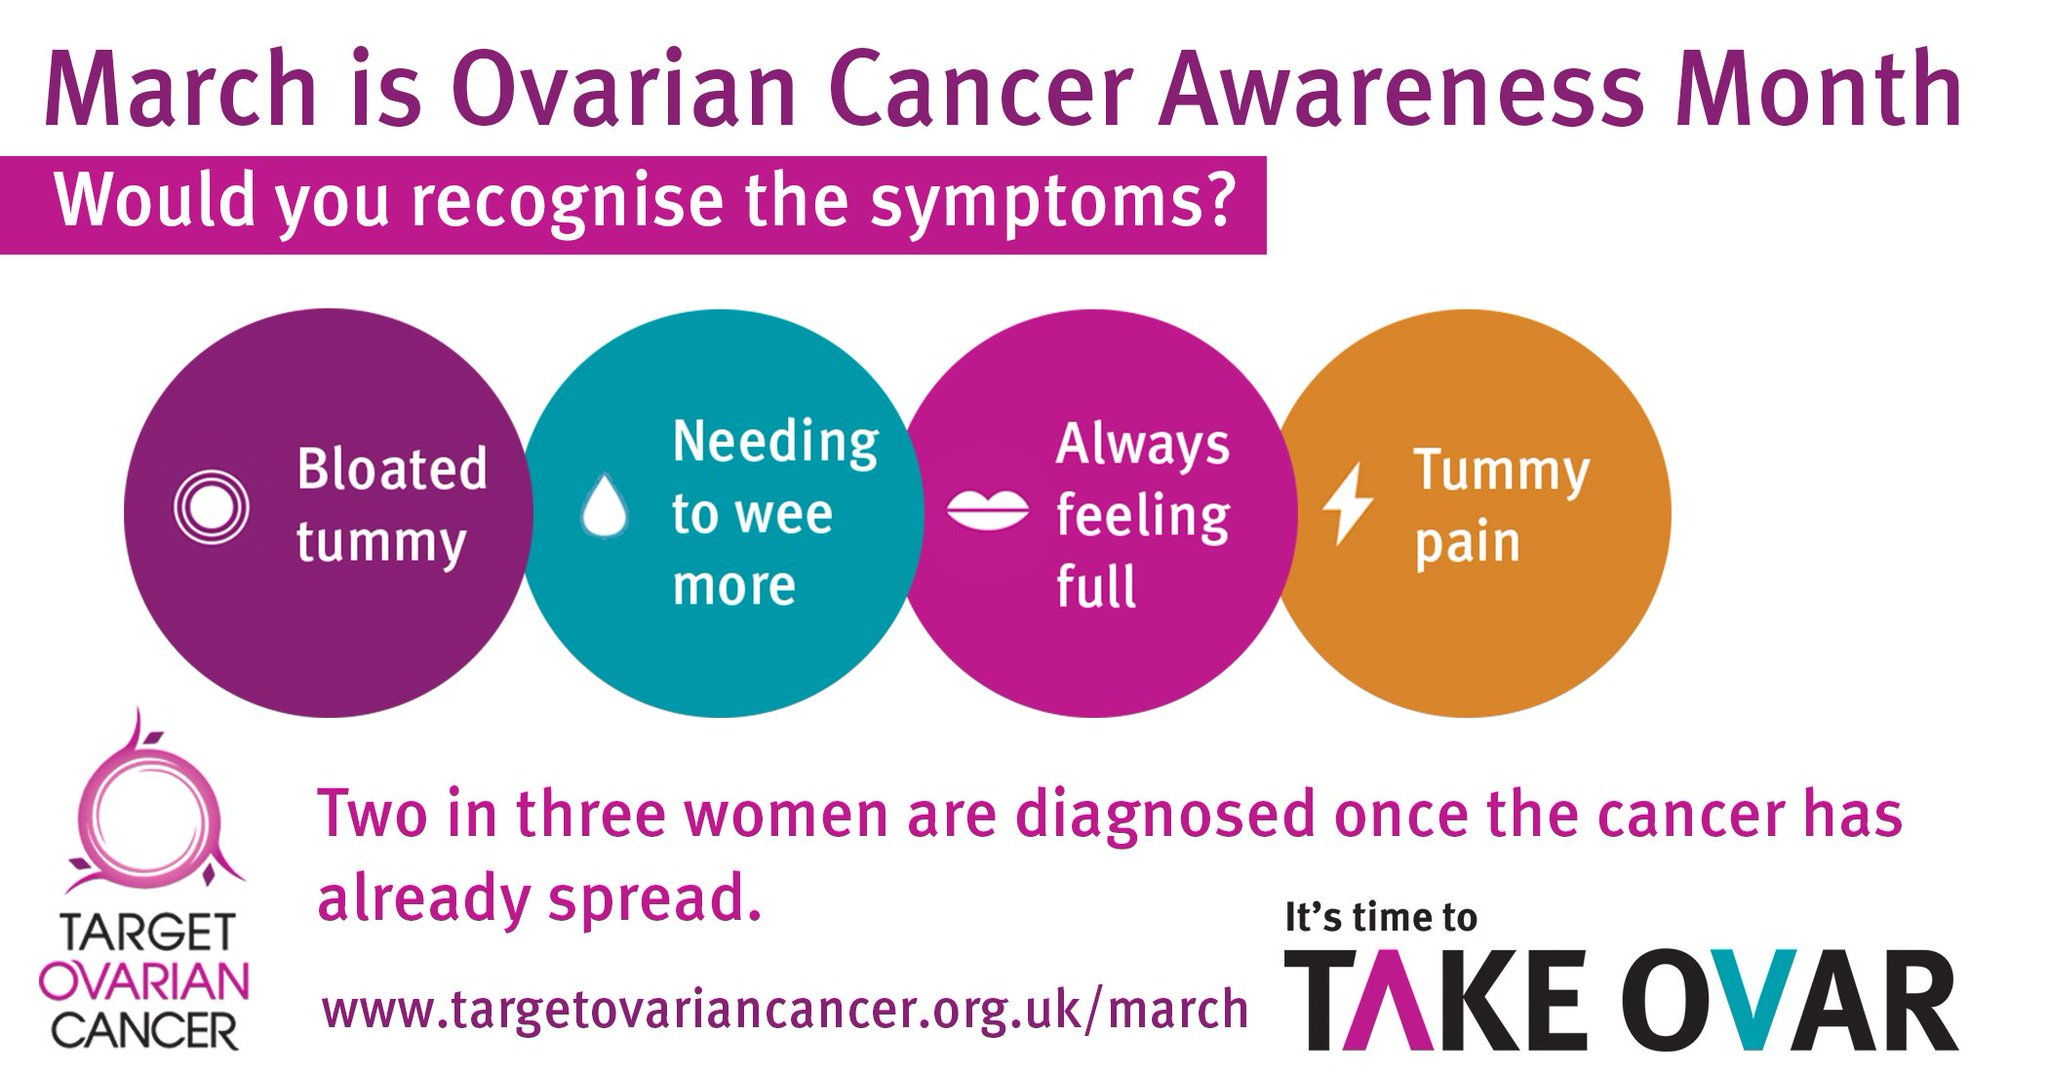 Bjr Journals On Twitter Research Spend On Ovarian Cancer In The Uk Has Dropped By A Third In Five Years This March For Ovarian Cancer Awareness Month Startmakingnoise So We Can Make